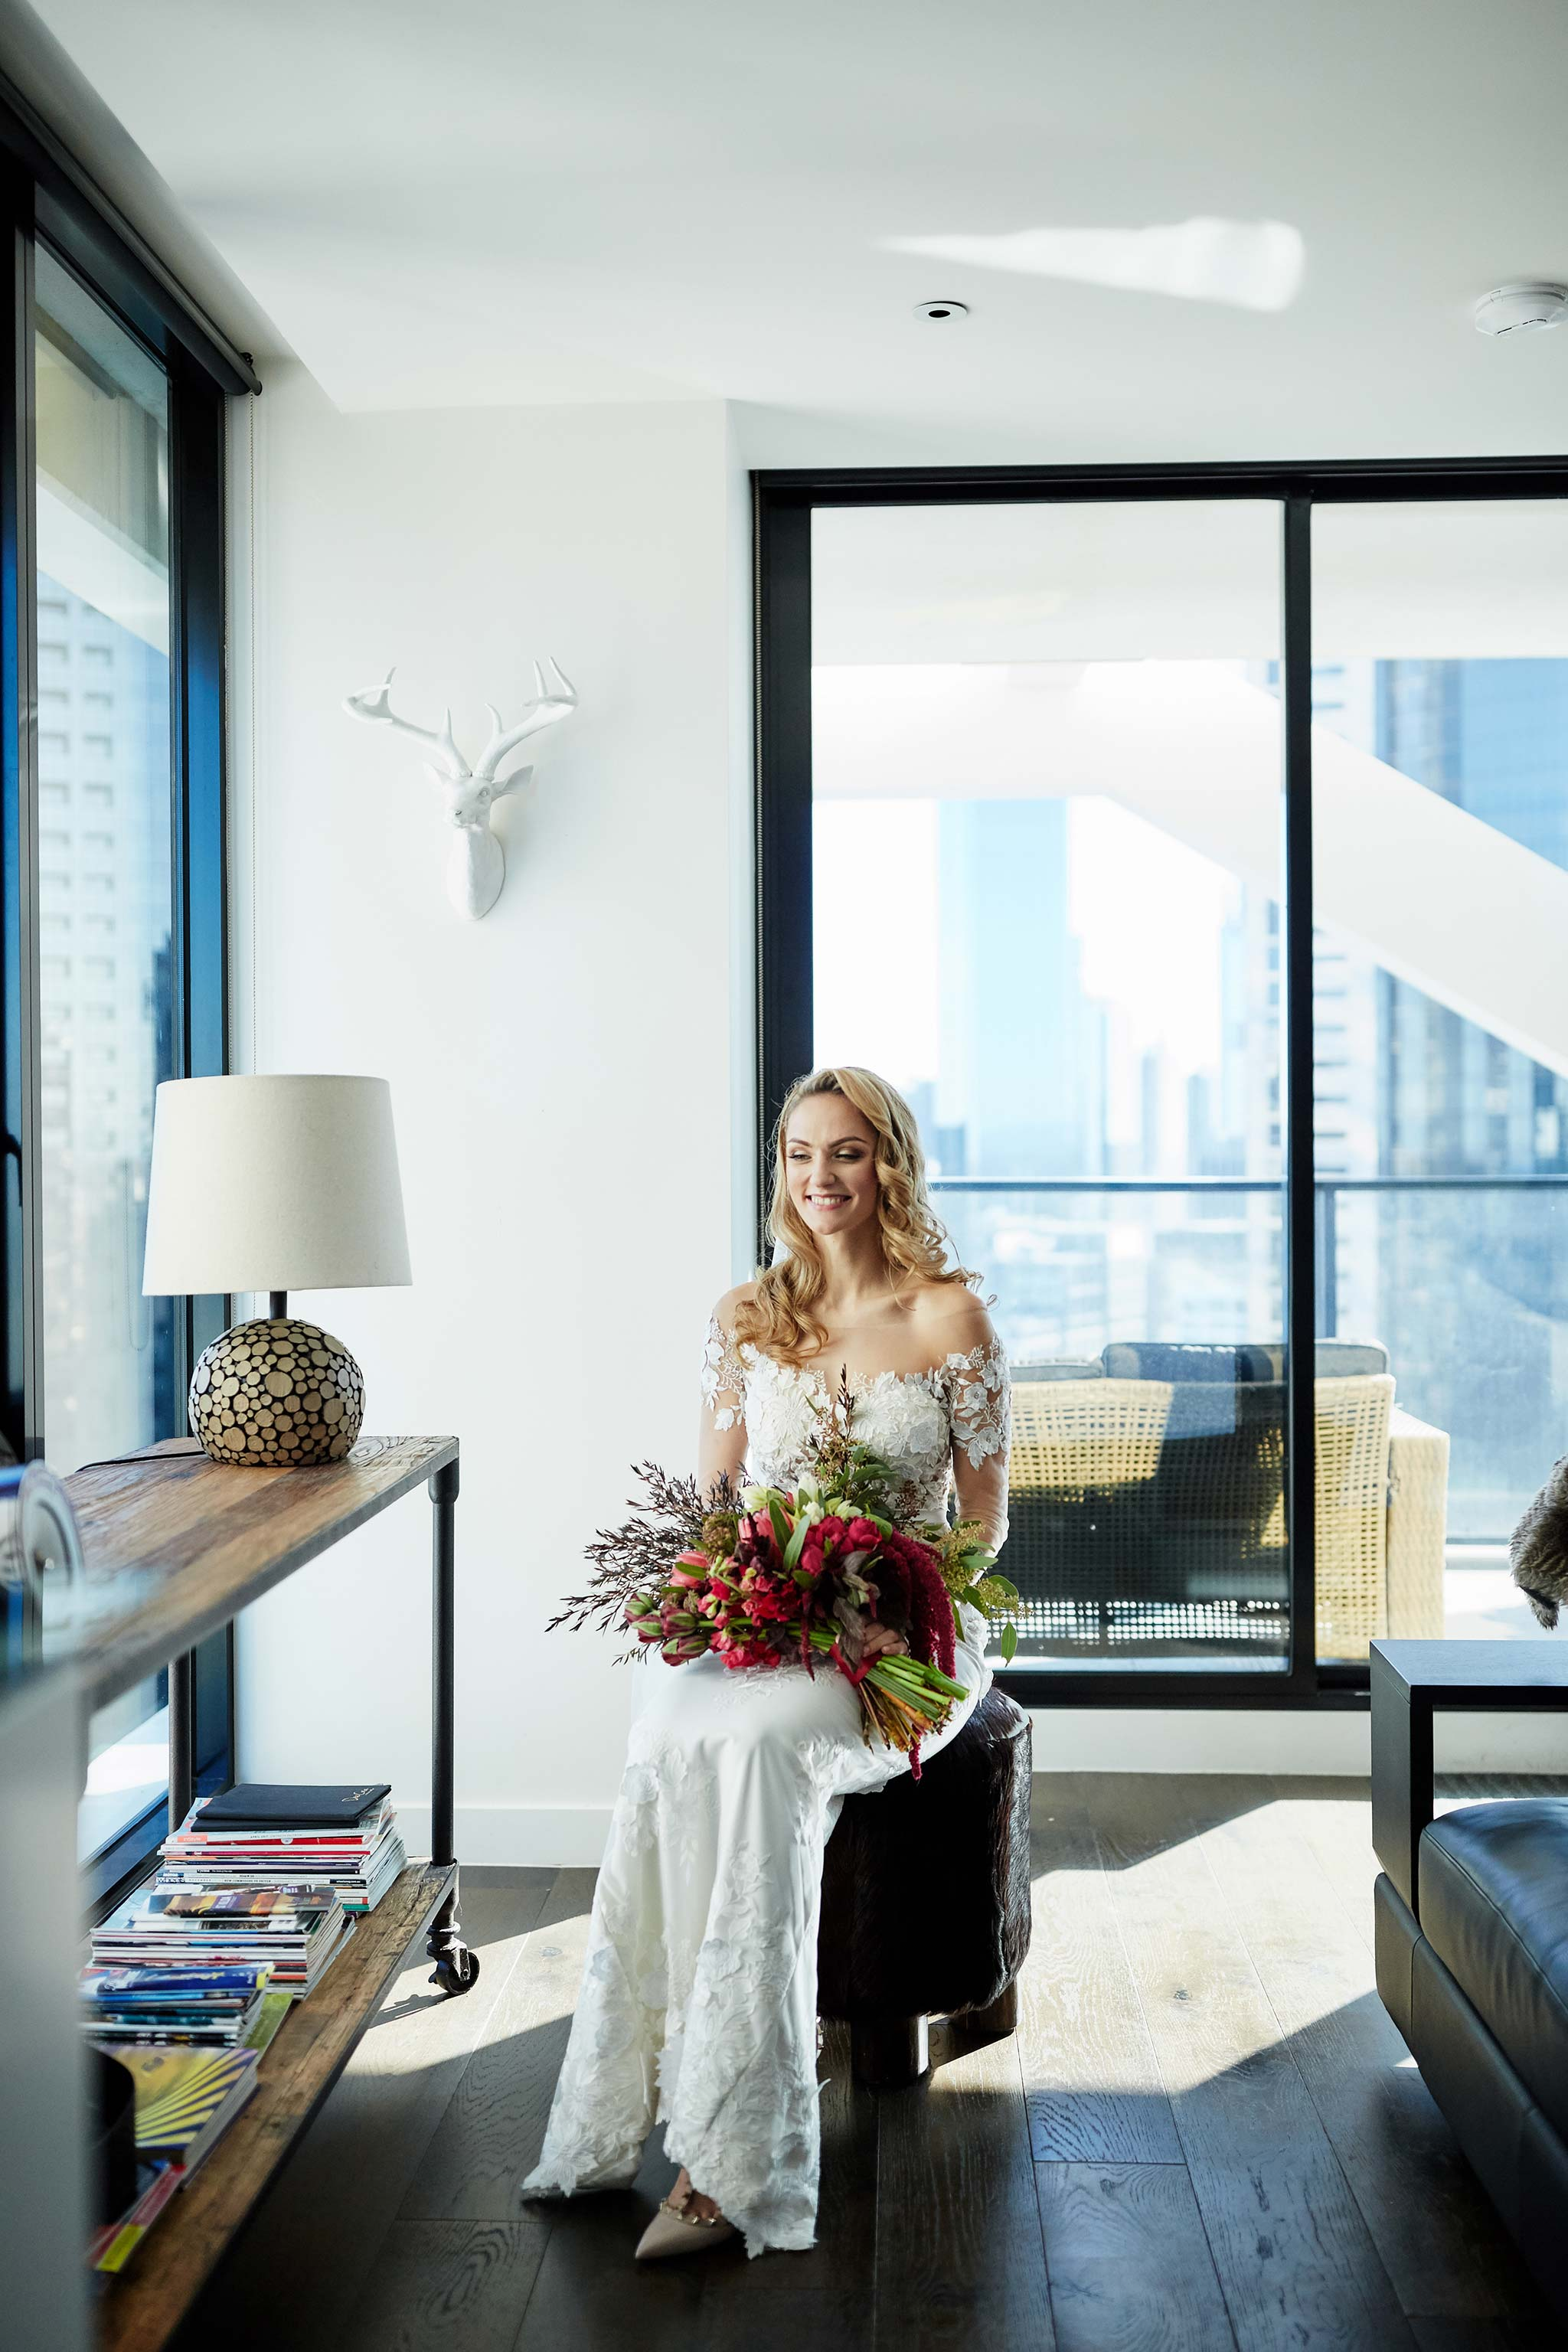 Melbourne-Wedding-Photographer-service-apartment-getting-ready-bride